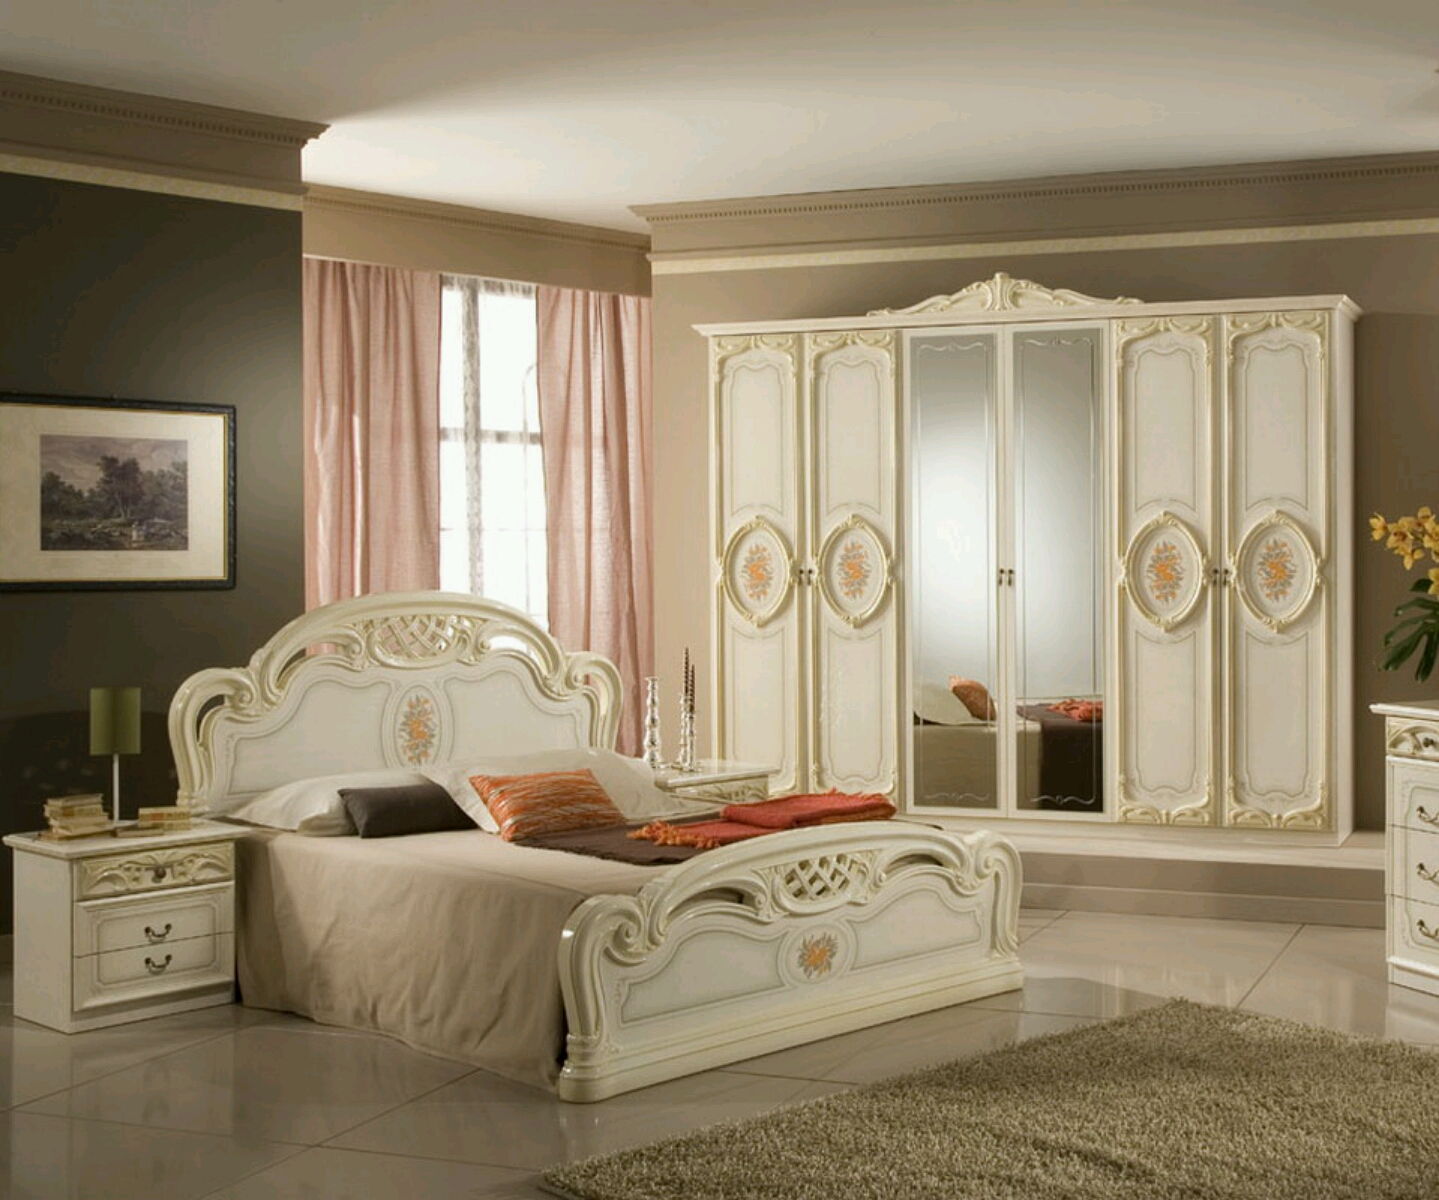 Modern luxury bedroom furniture designs ideas vintage for Furniture ideas bedroom